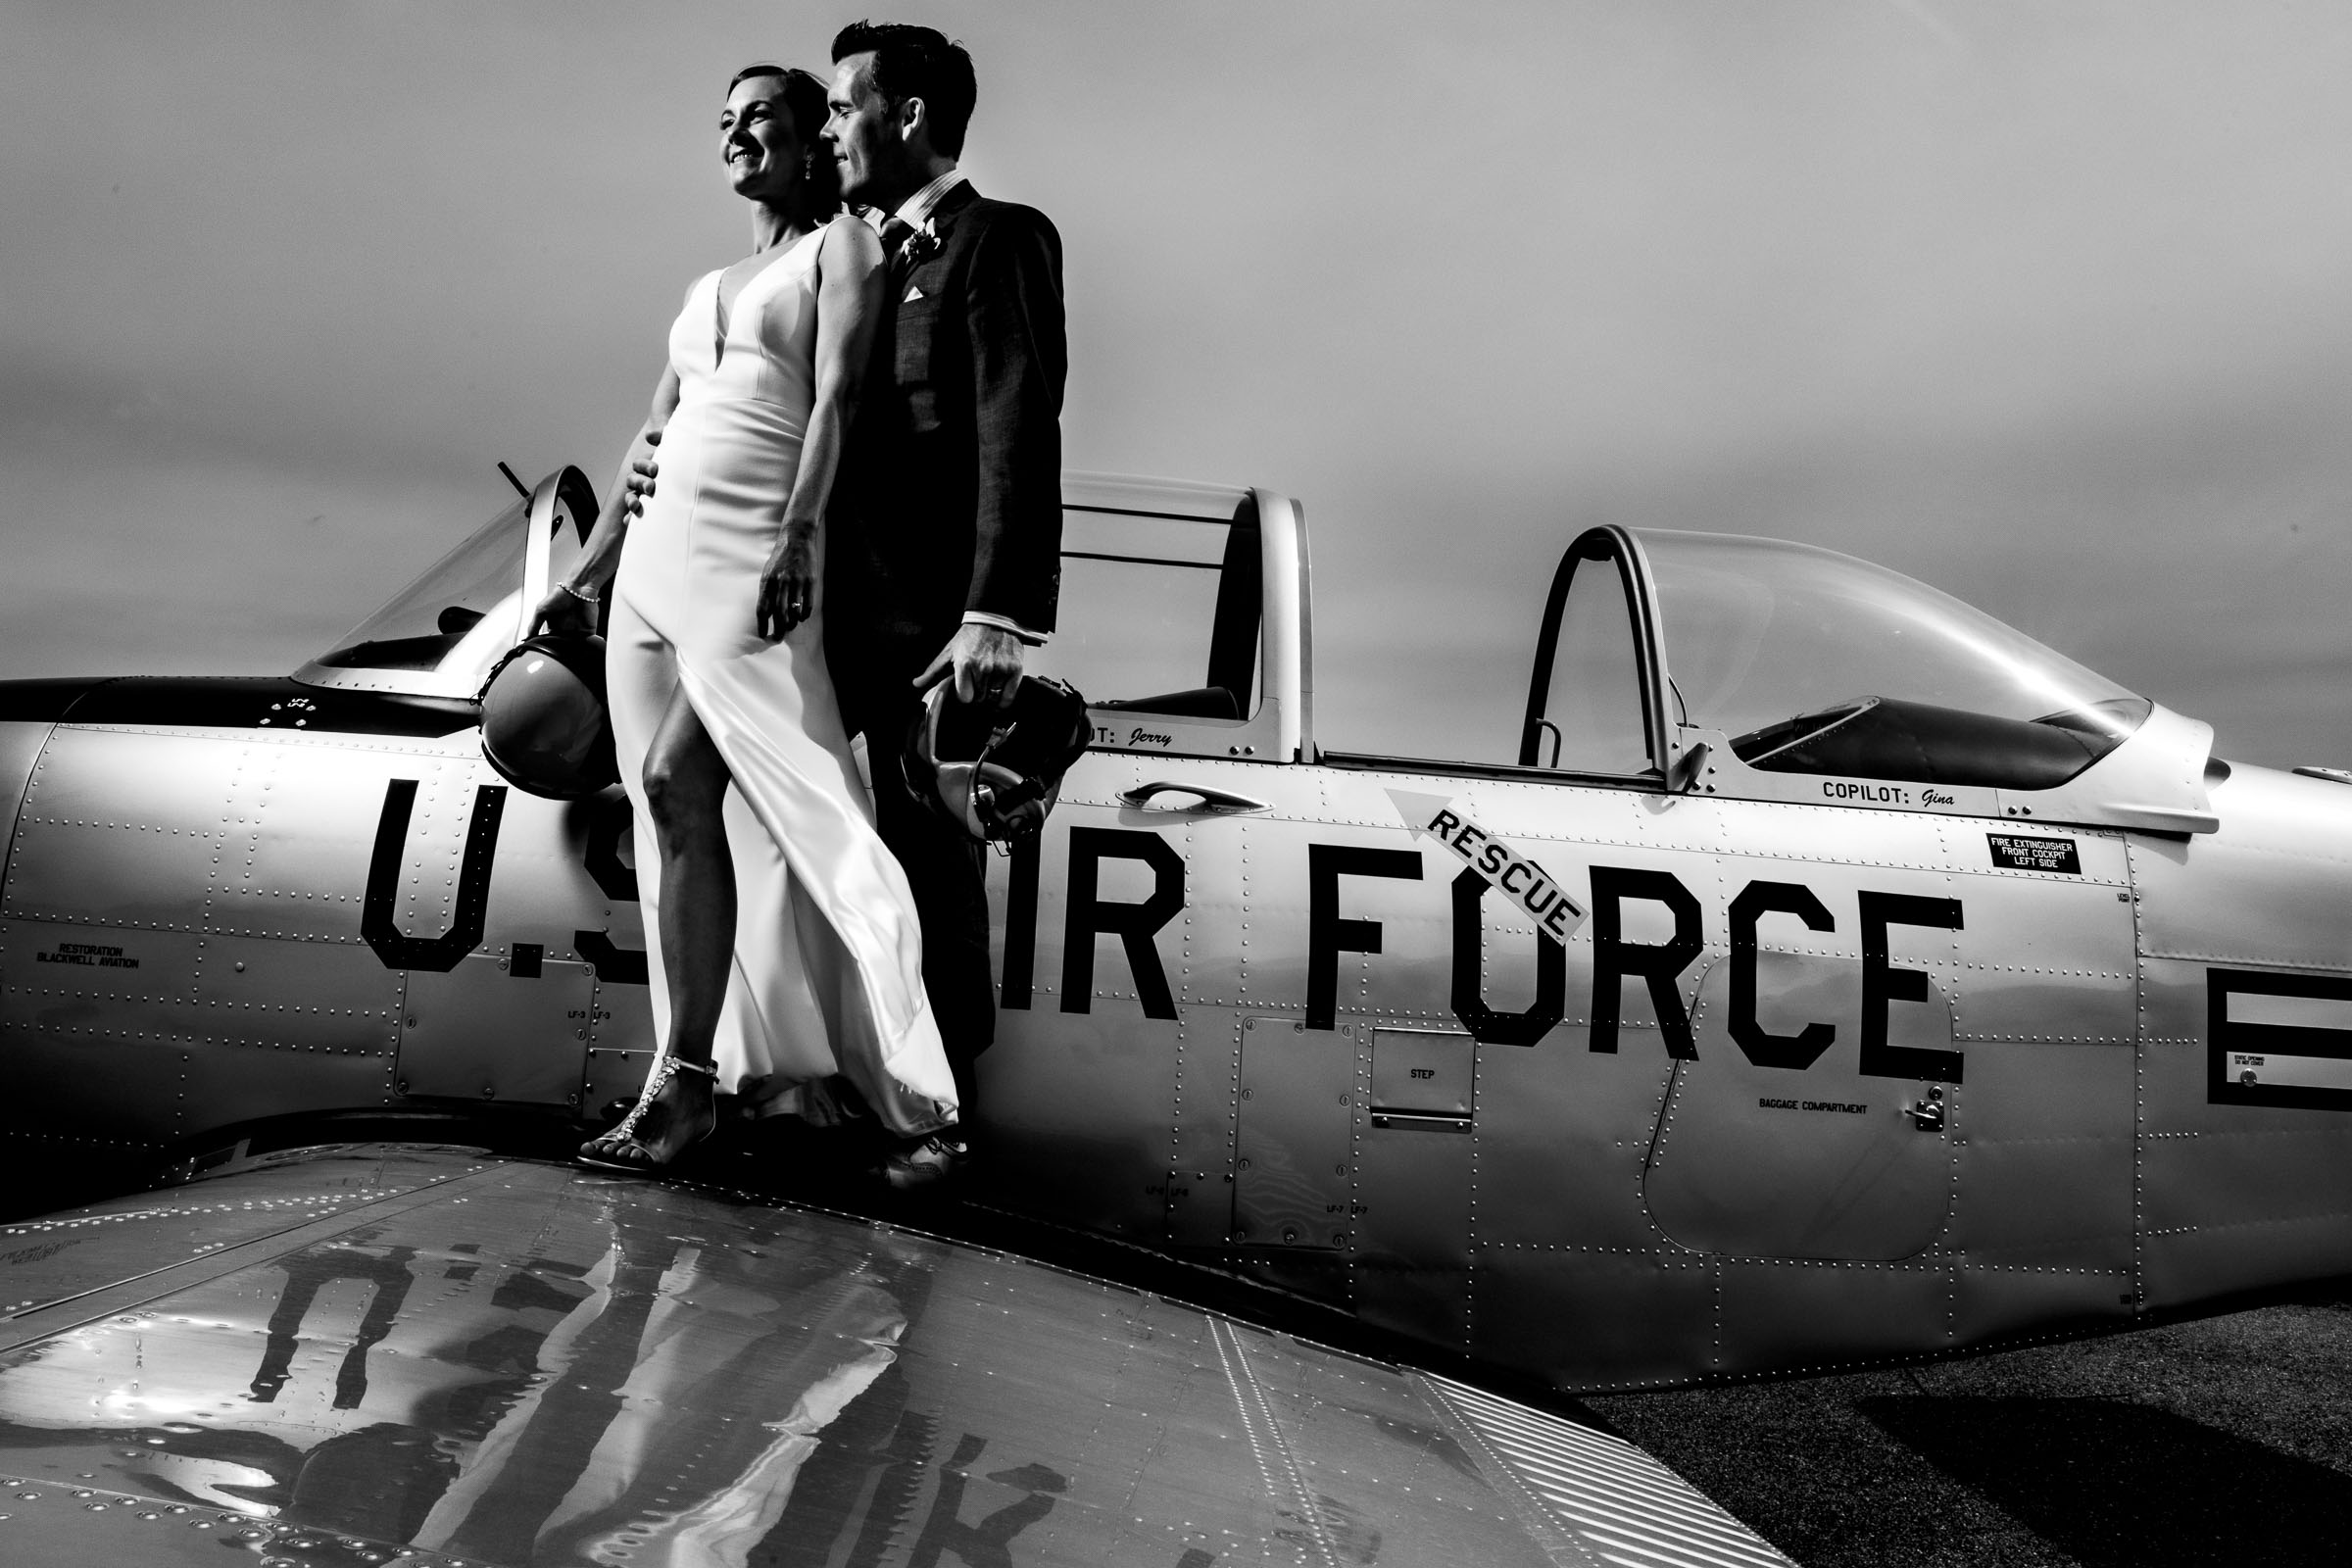 Couple pose on wing of US Air Force plane - photo by JOS & TREE